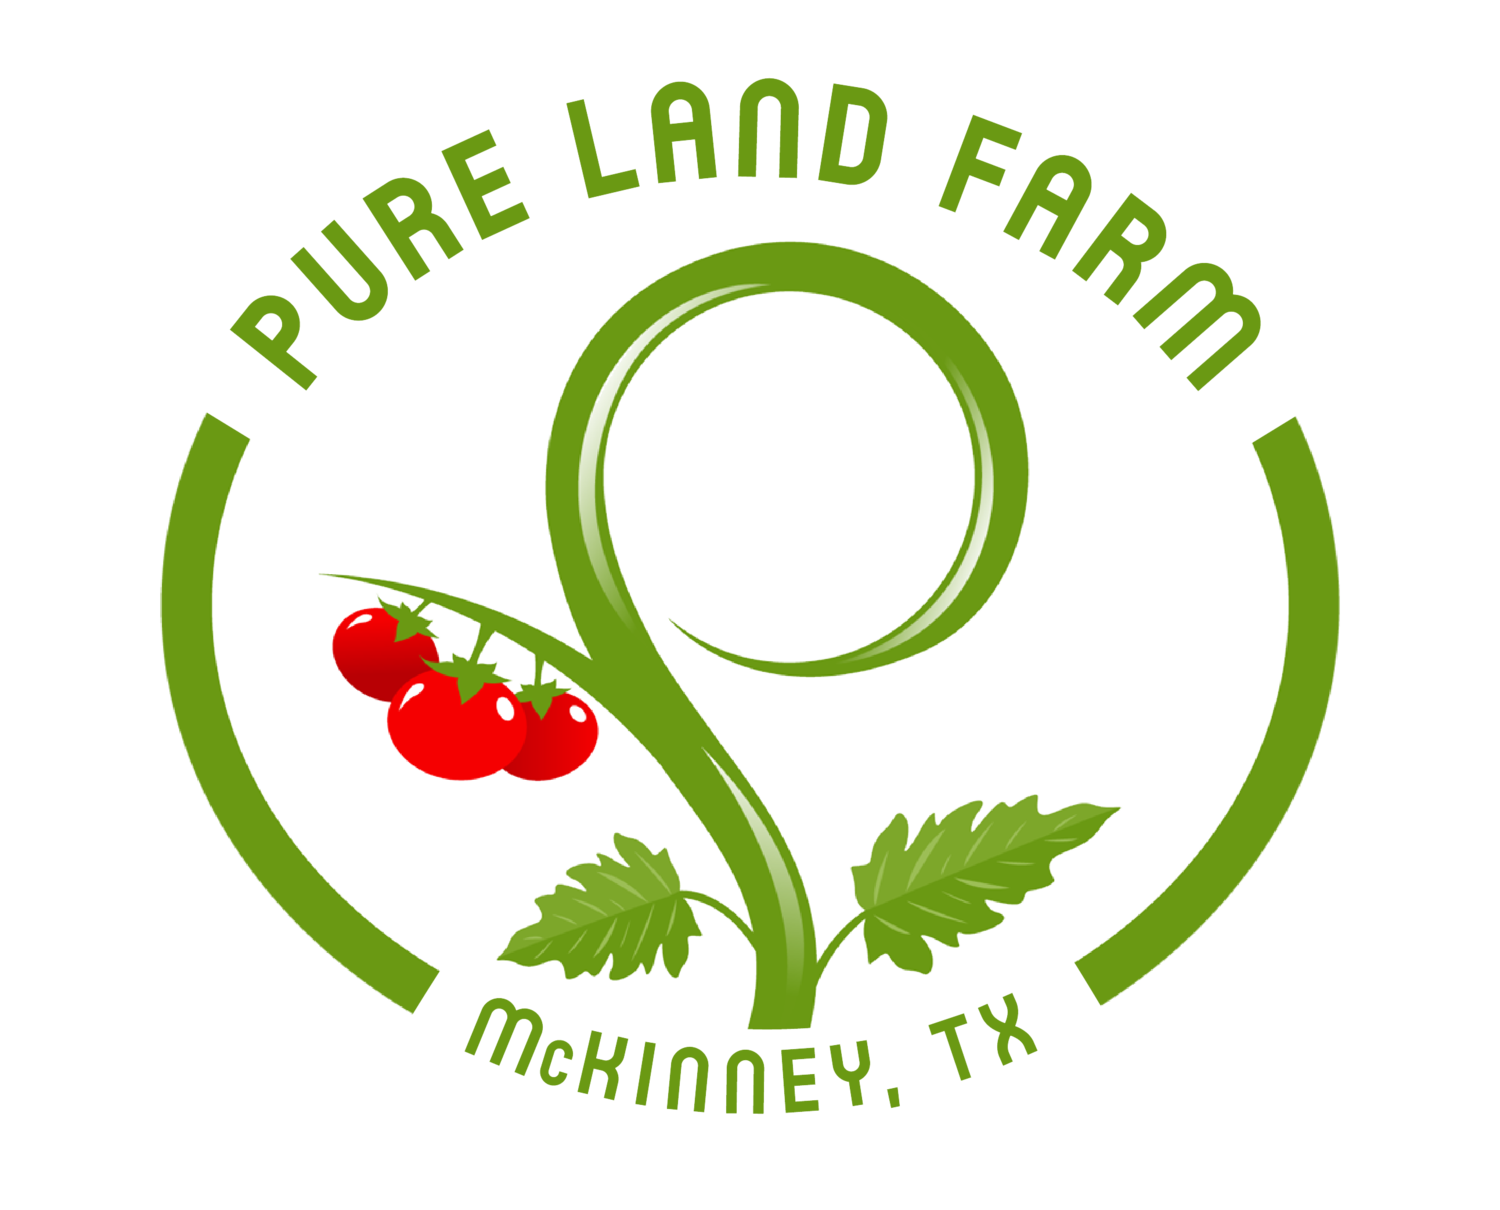 Pure Land Organic Farm